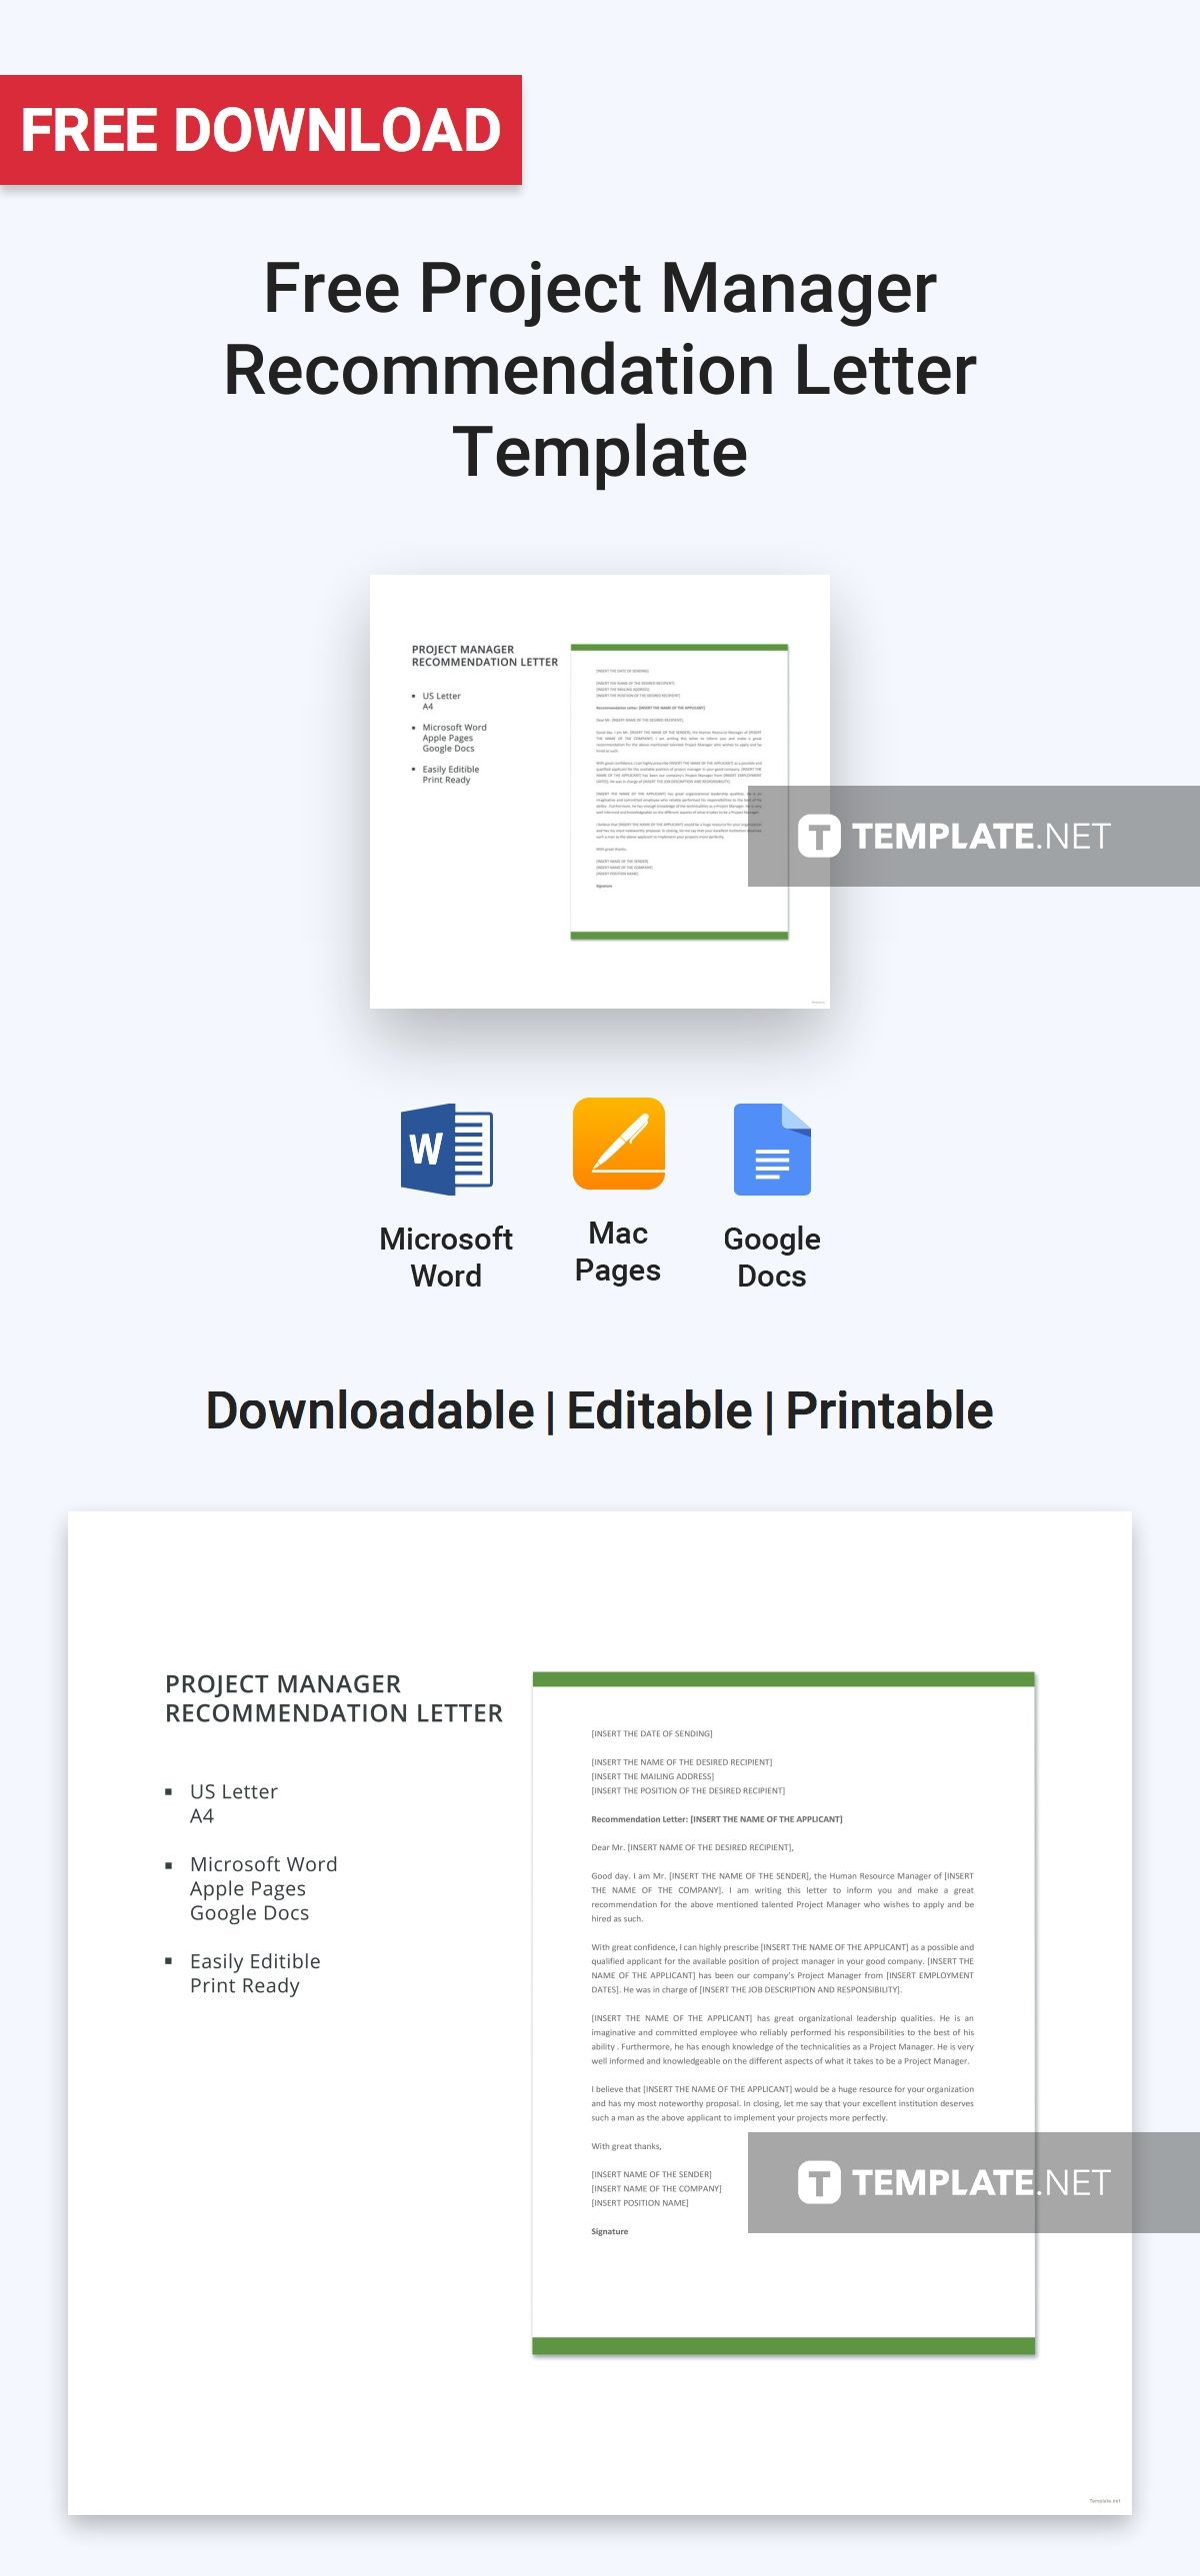 Free project manager recommendation letter pinterest letter free project manager recommendation letter pinterest letter templates and template spiritdancerdesigns Image collections